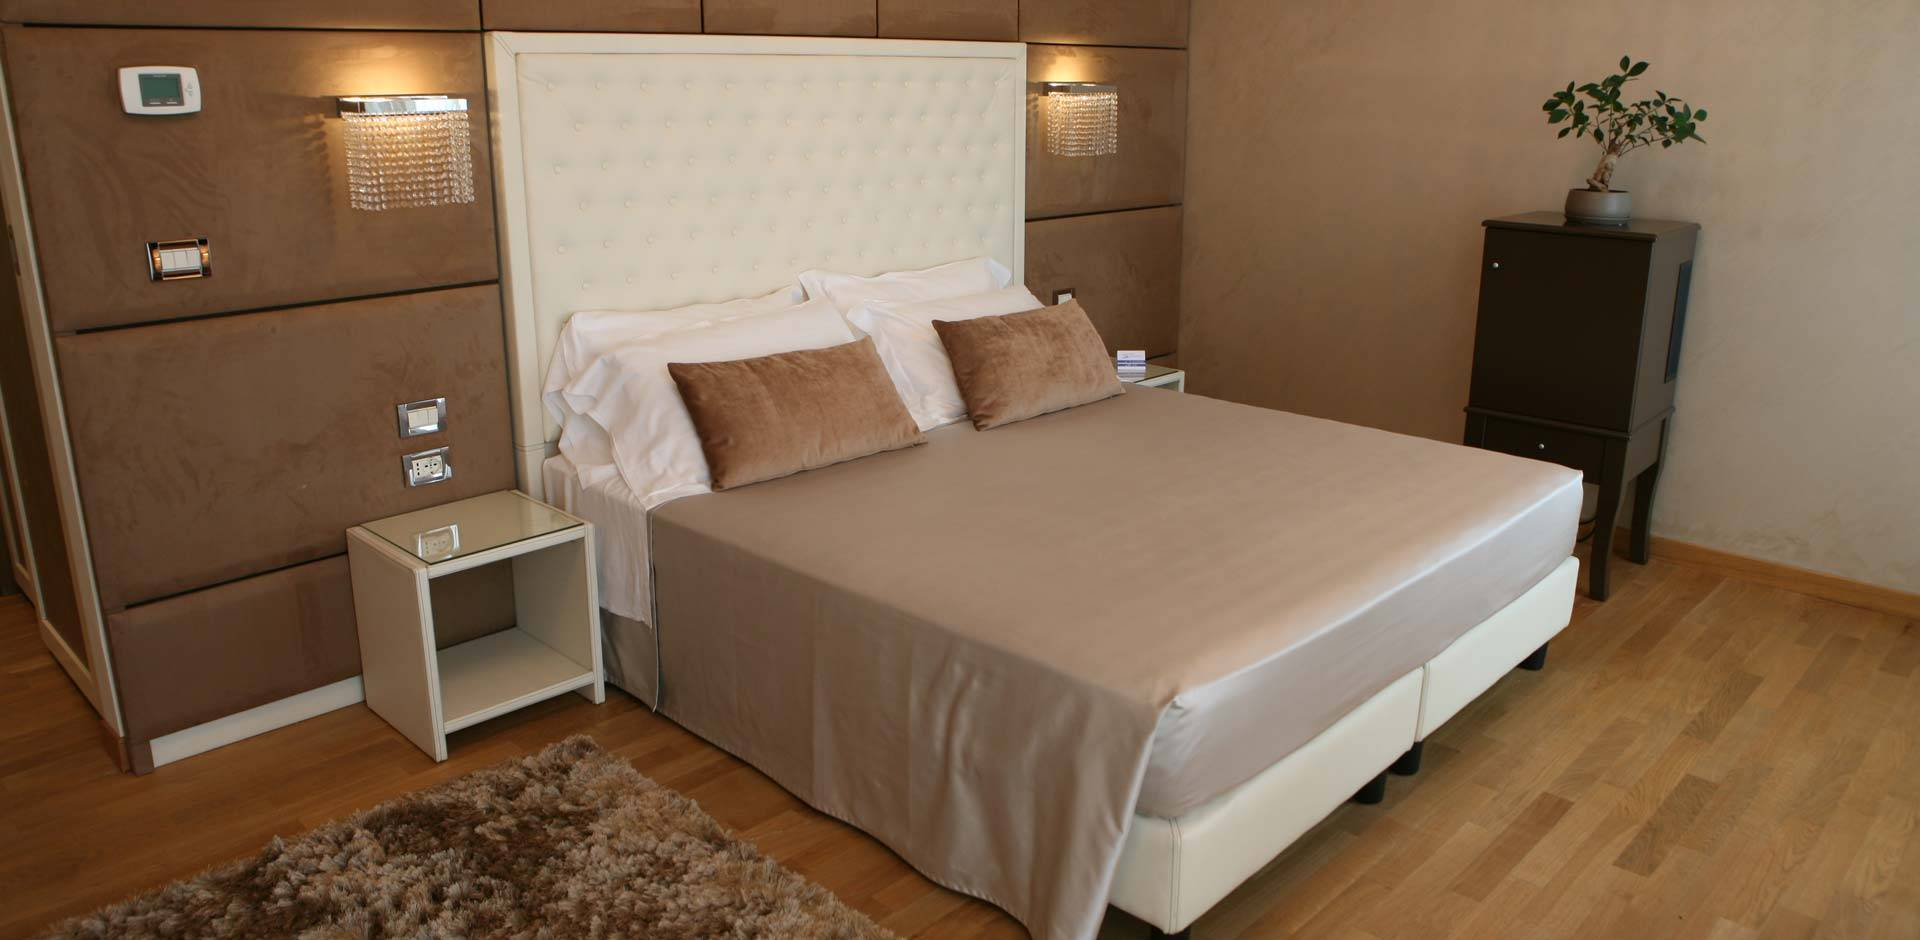 Le camere | Club Family Hotel Michelangelo